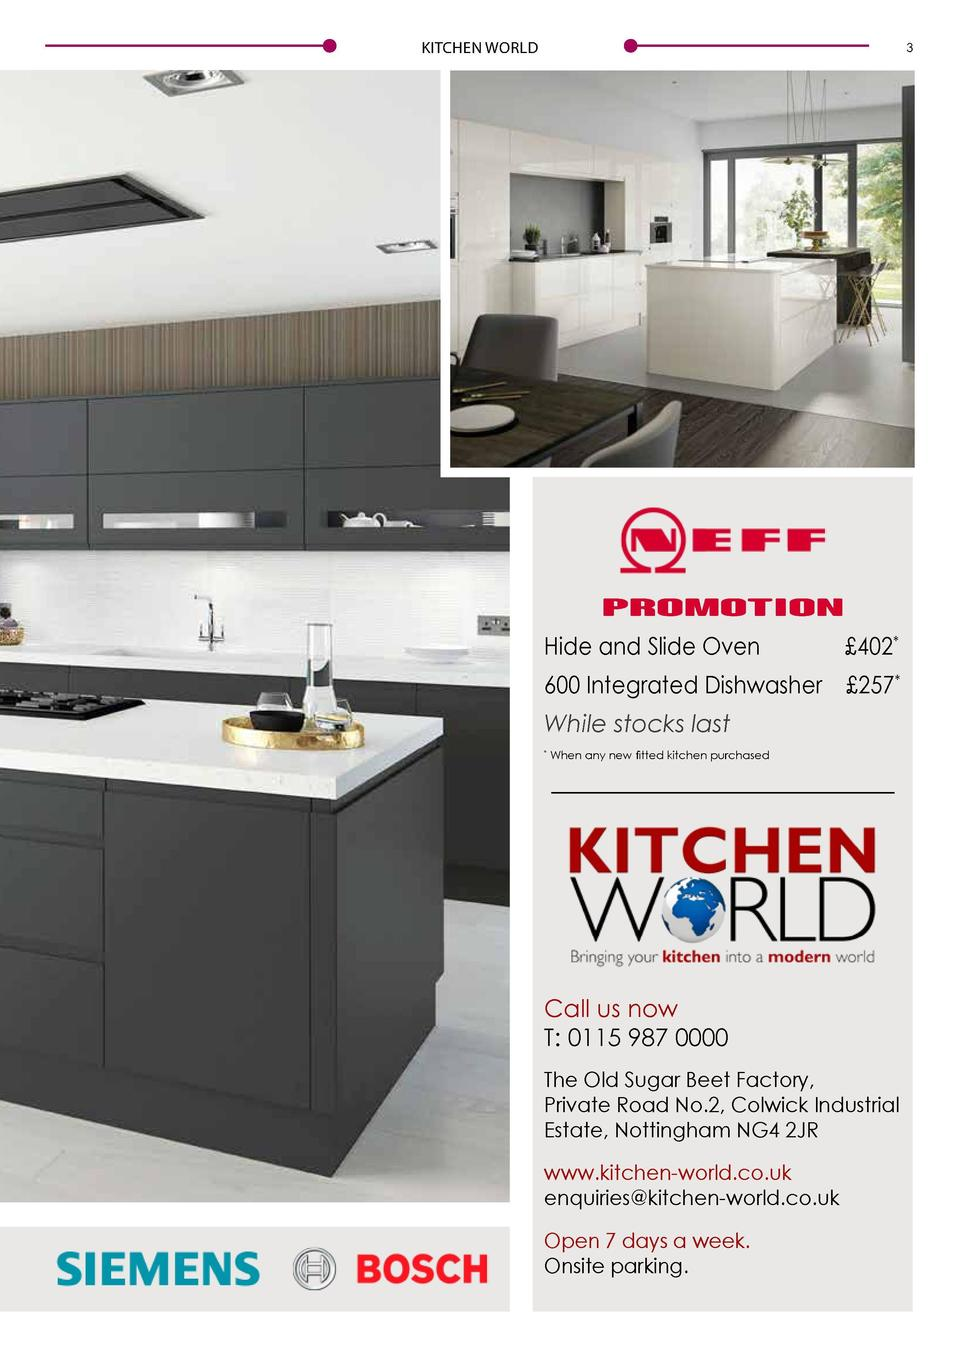 2  KITCHEN WORLD  KITCHEN WORLD  3  MAKING QUALITY AFFORDABLE  PROMOTION Hide and Slide Oven    402   600 Integrated Dishw...